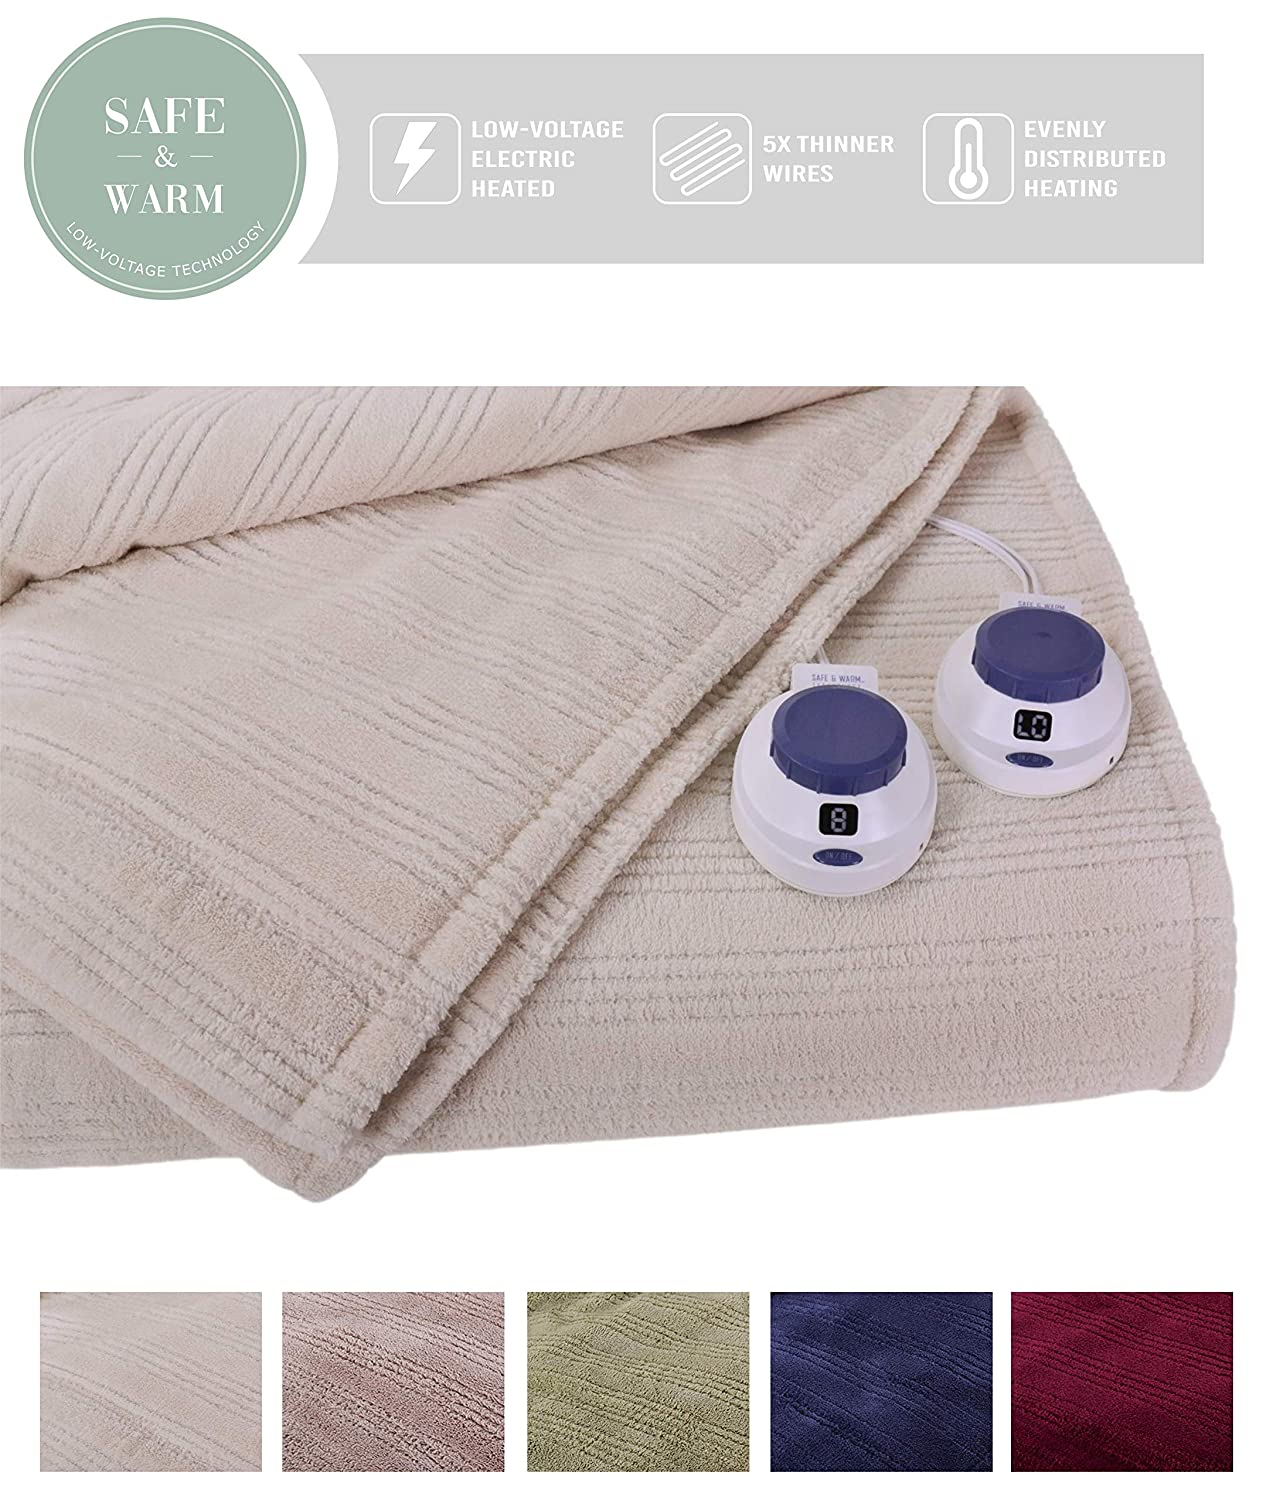 SoftHeat Ultra Micro-Plush Electric Blanket Black Friday Deal